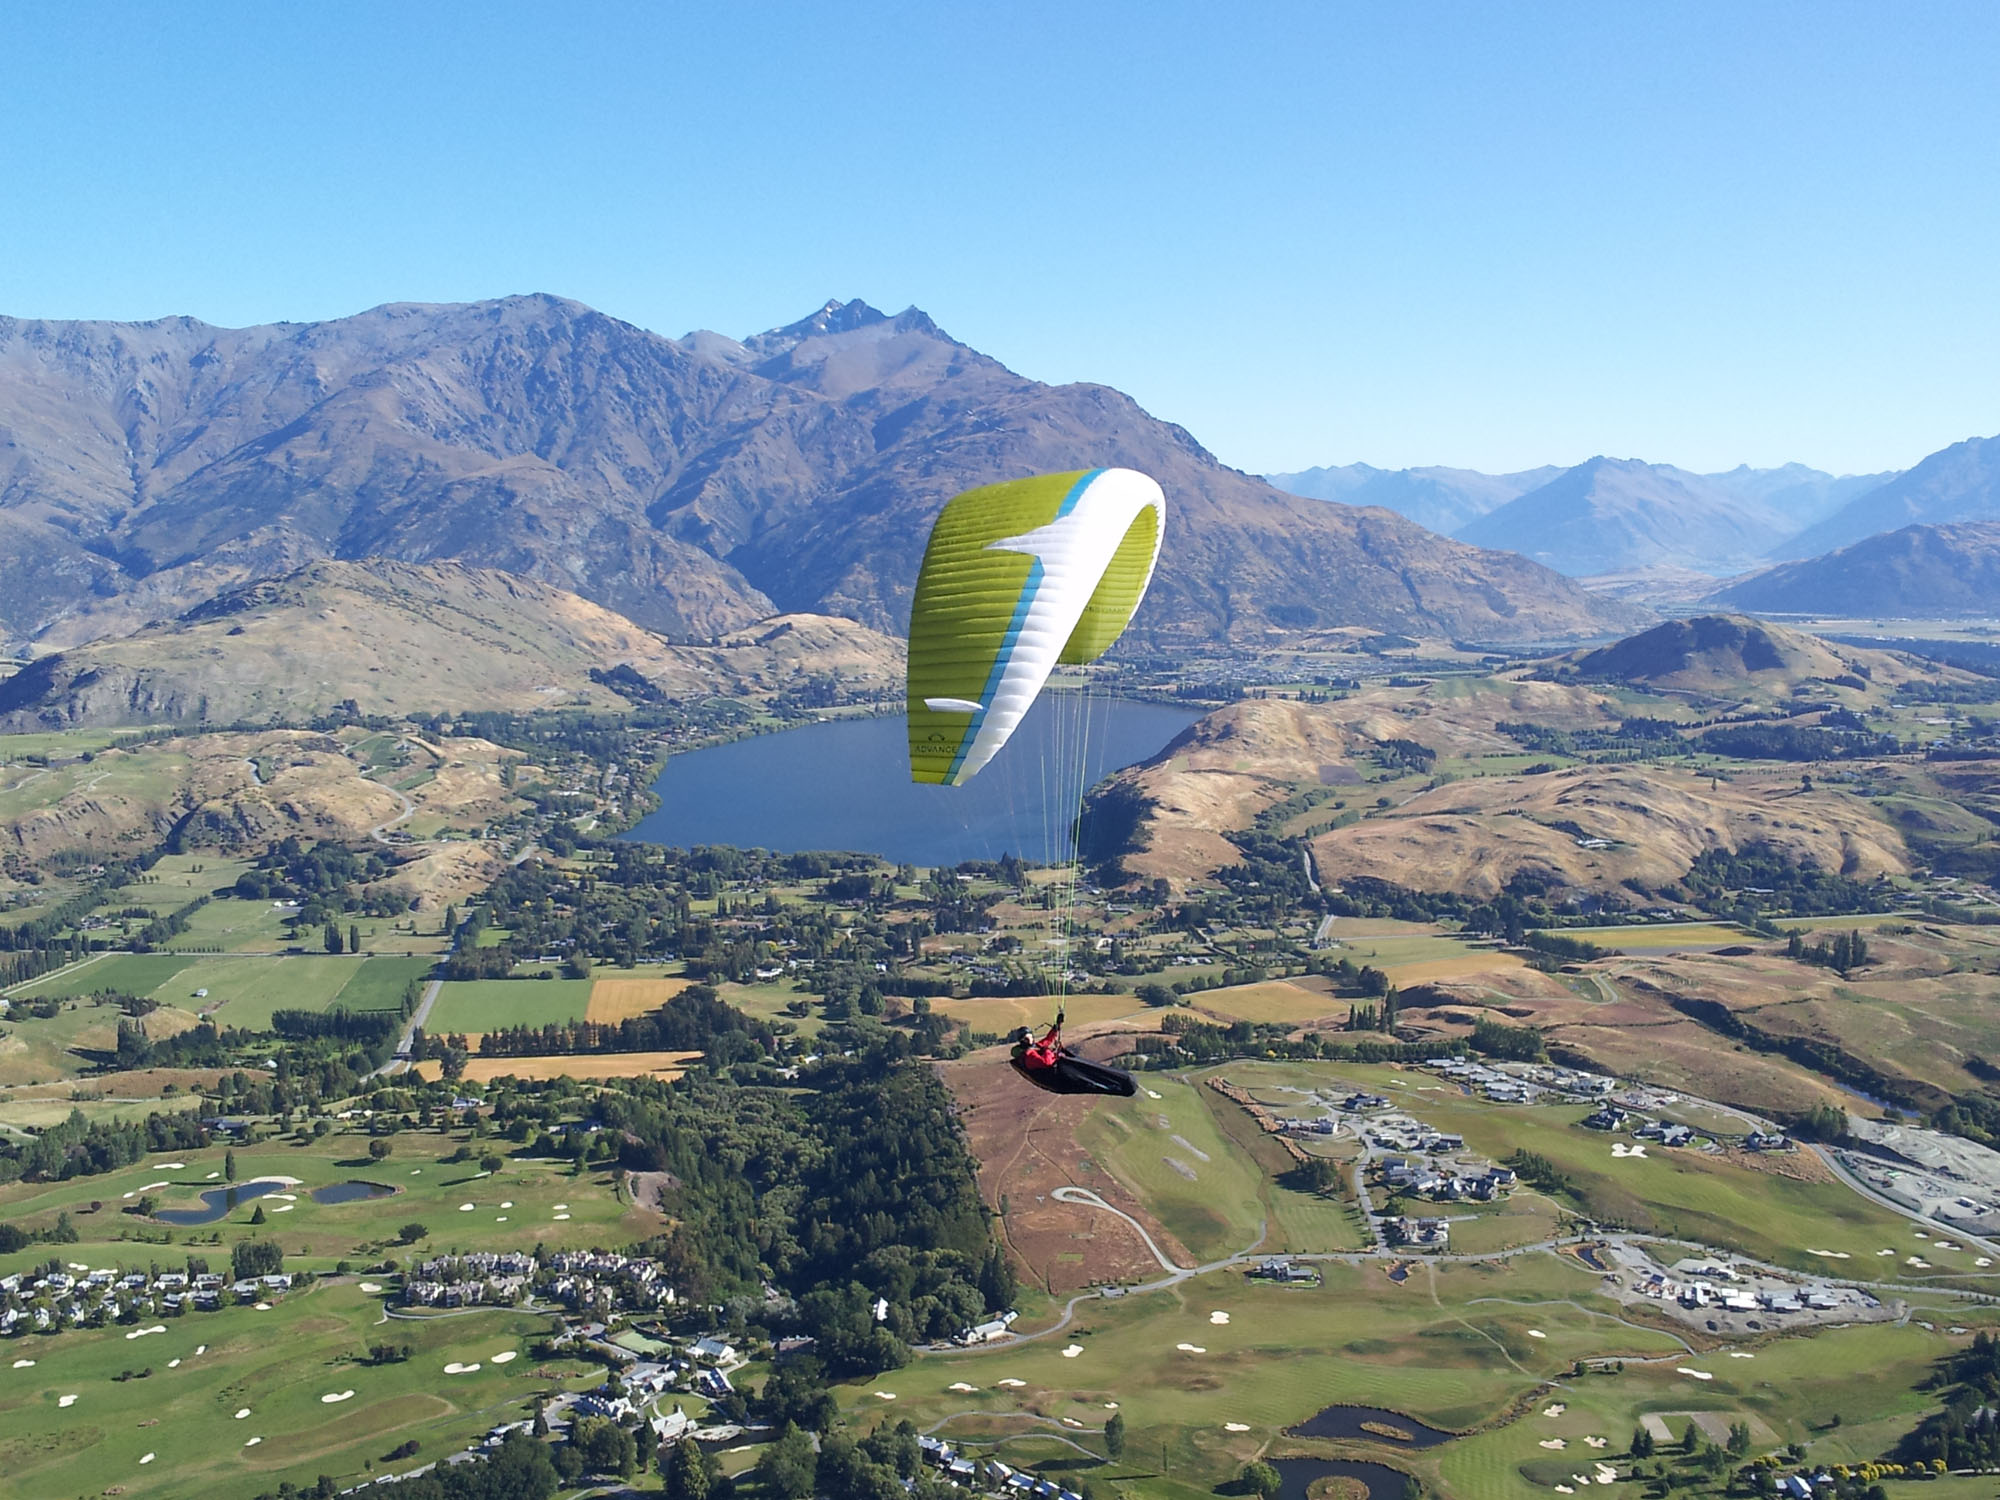 Cross Country XC Course - Infinity Paragliding 3